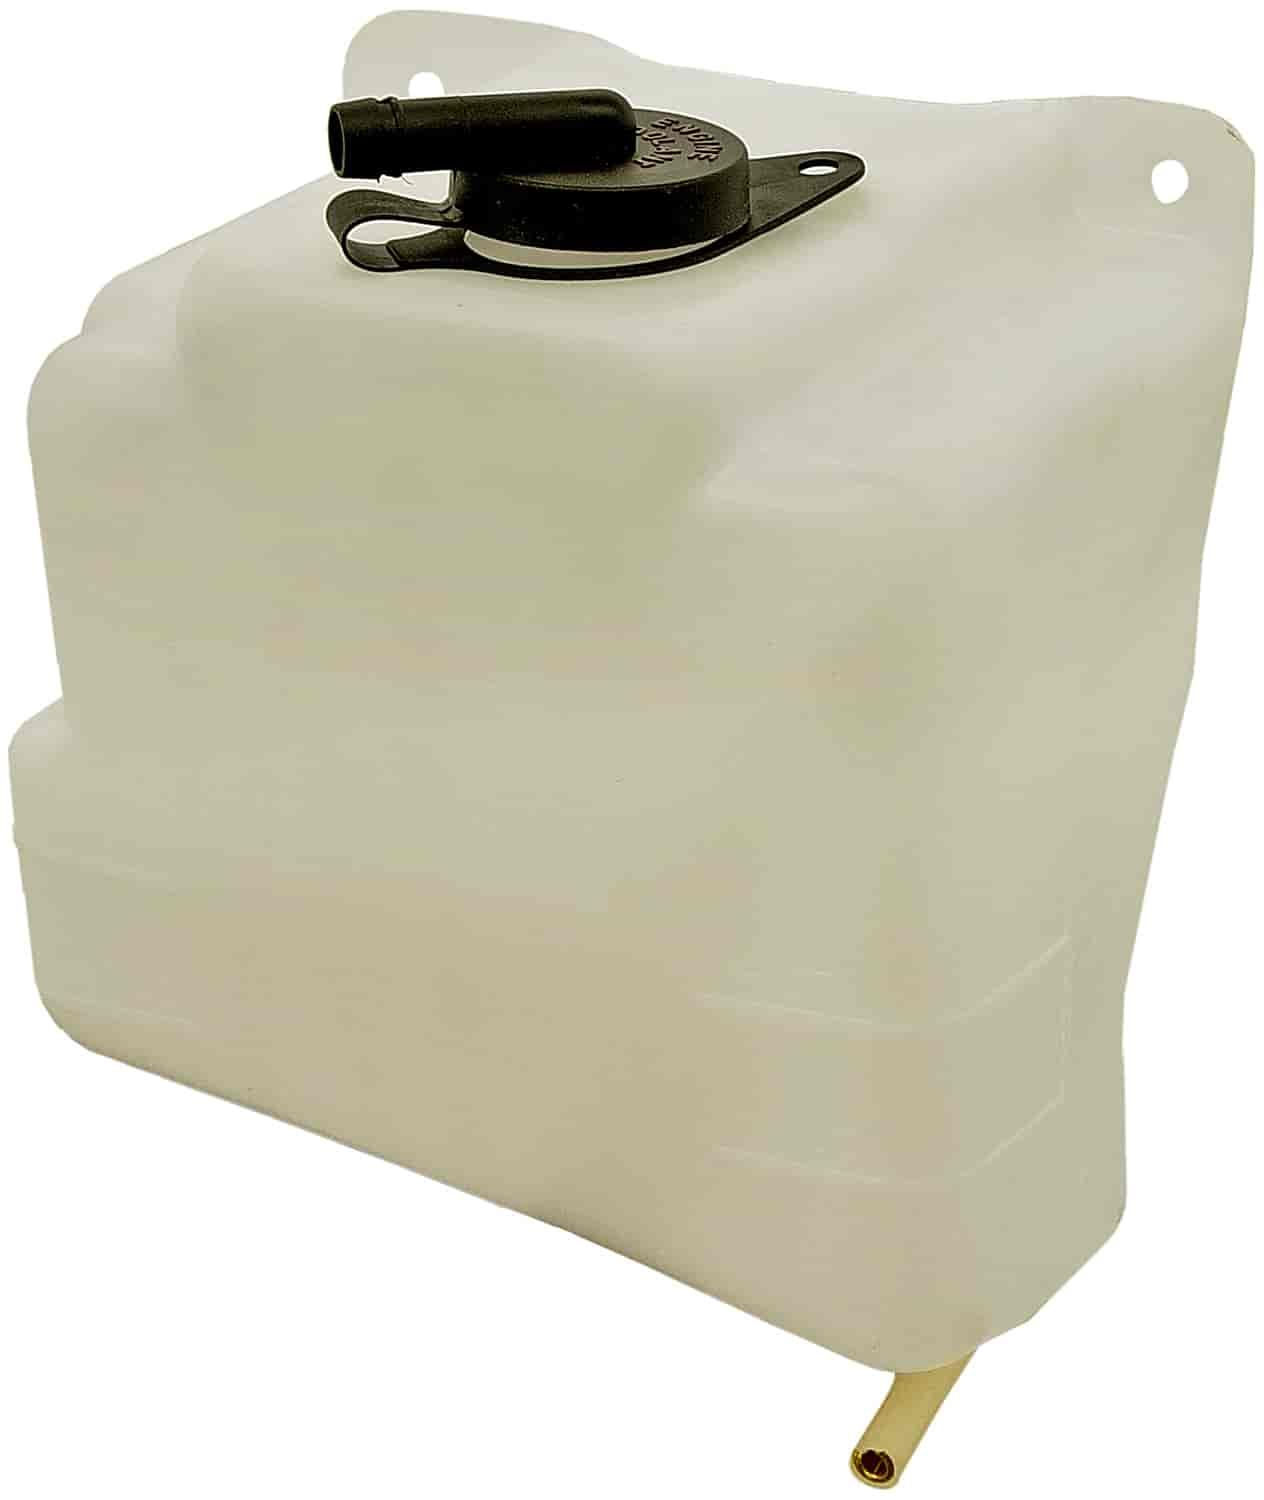 Dorman Products 603-100 - Dorman Fluid Reservoirs/Caps